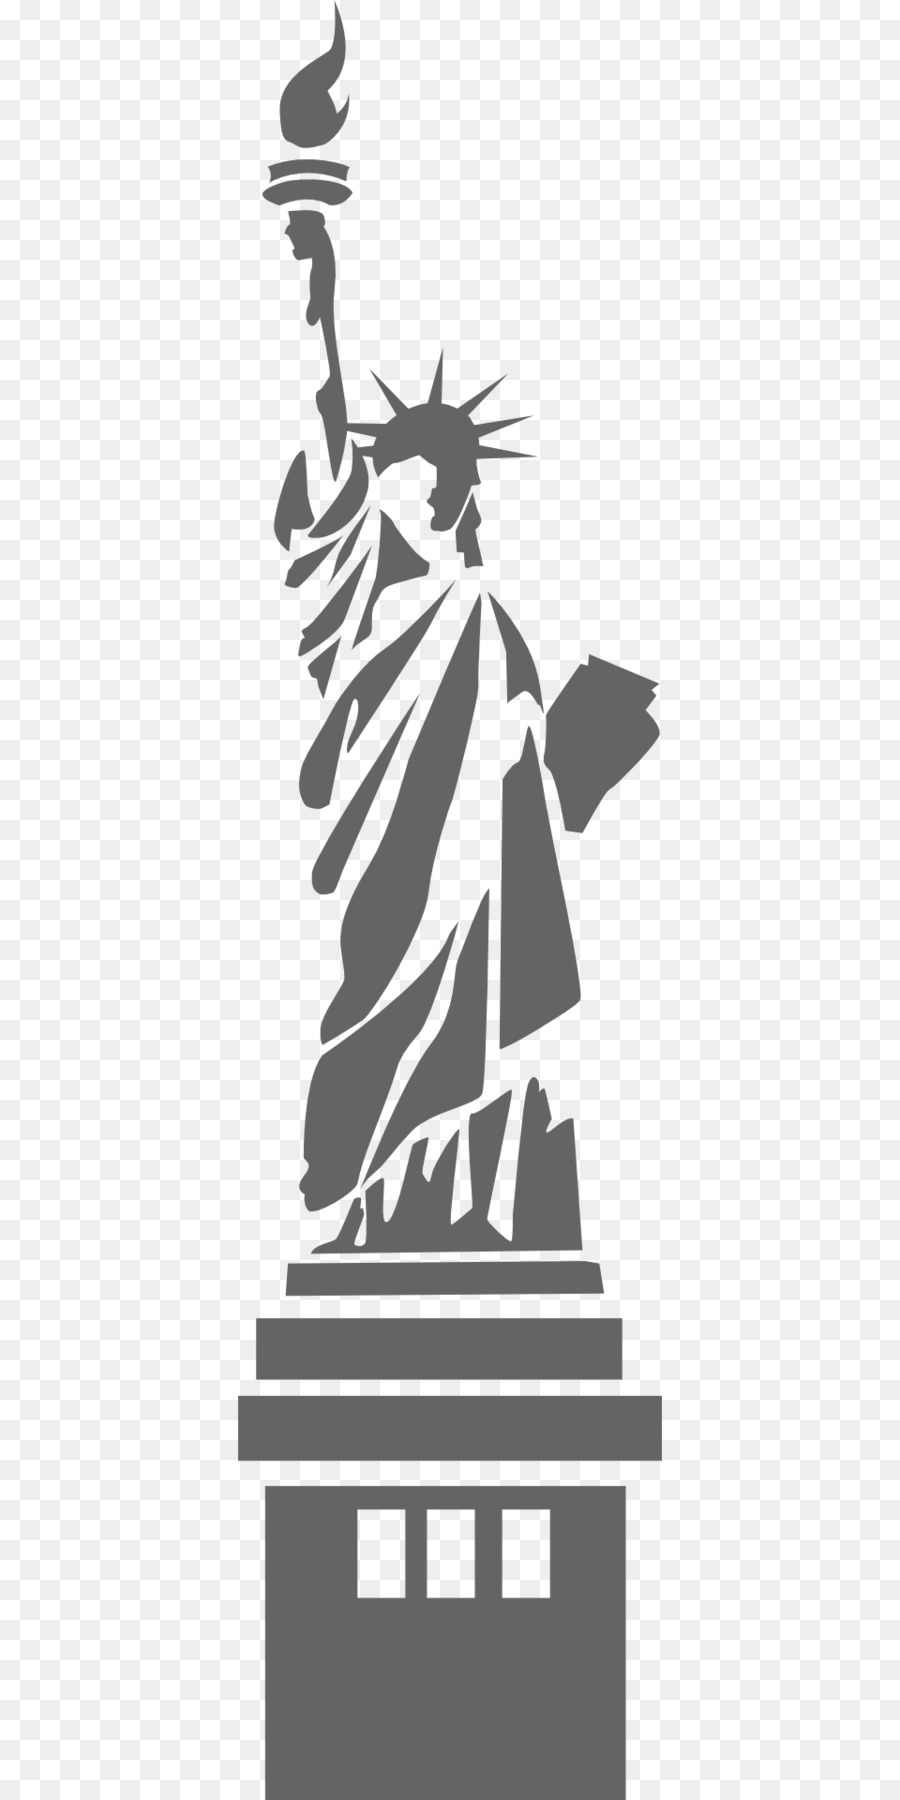 picture library download Liberty clipart transparent. Statue of cartoon illustration.